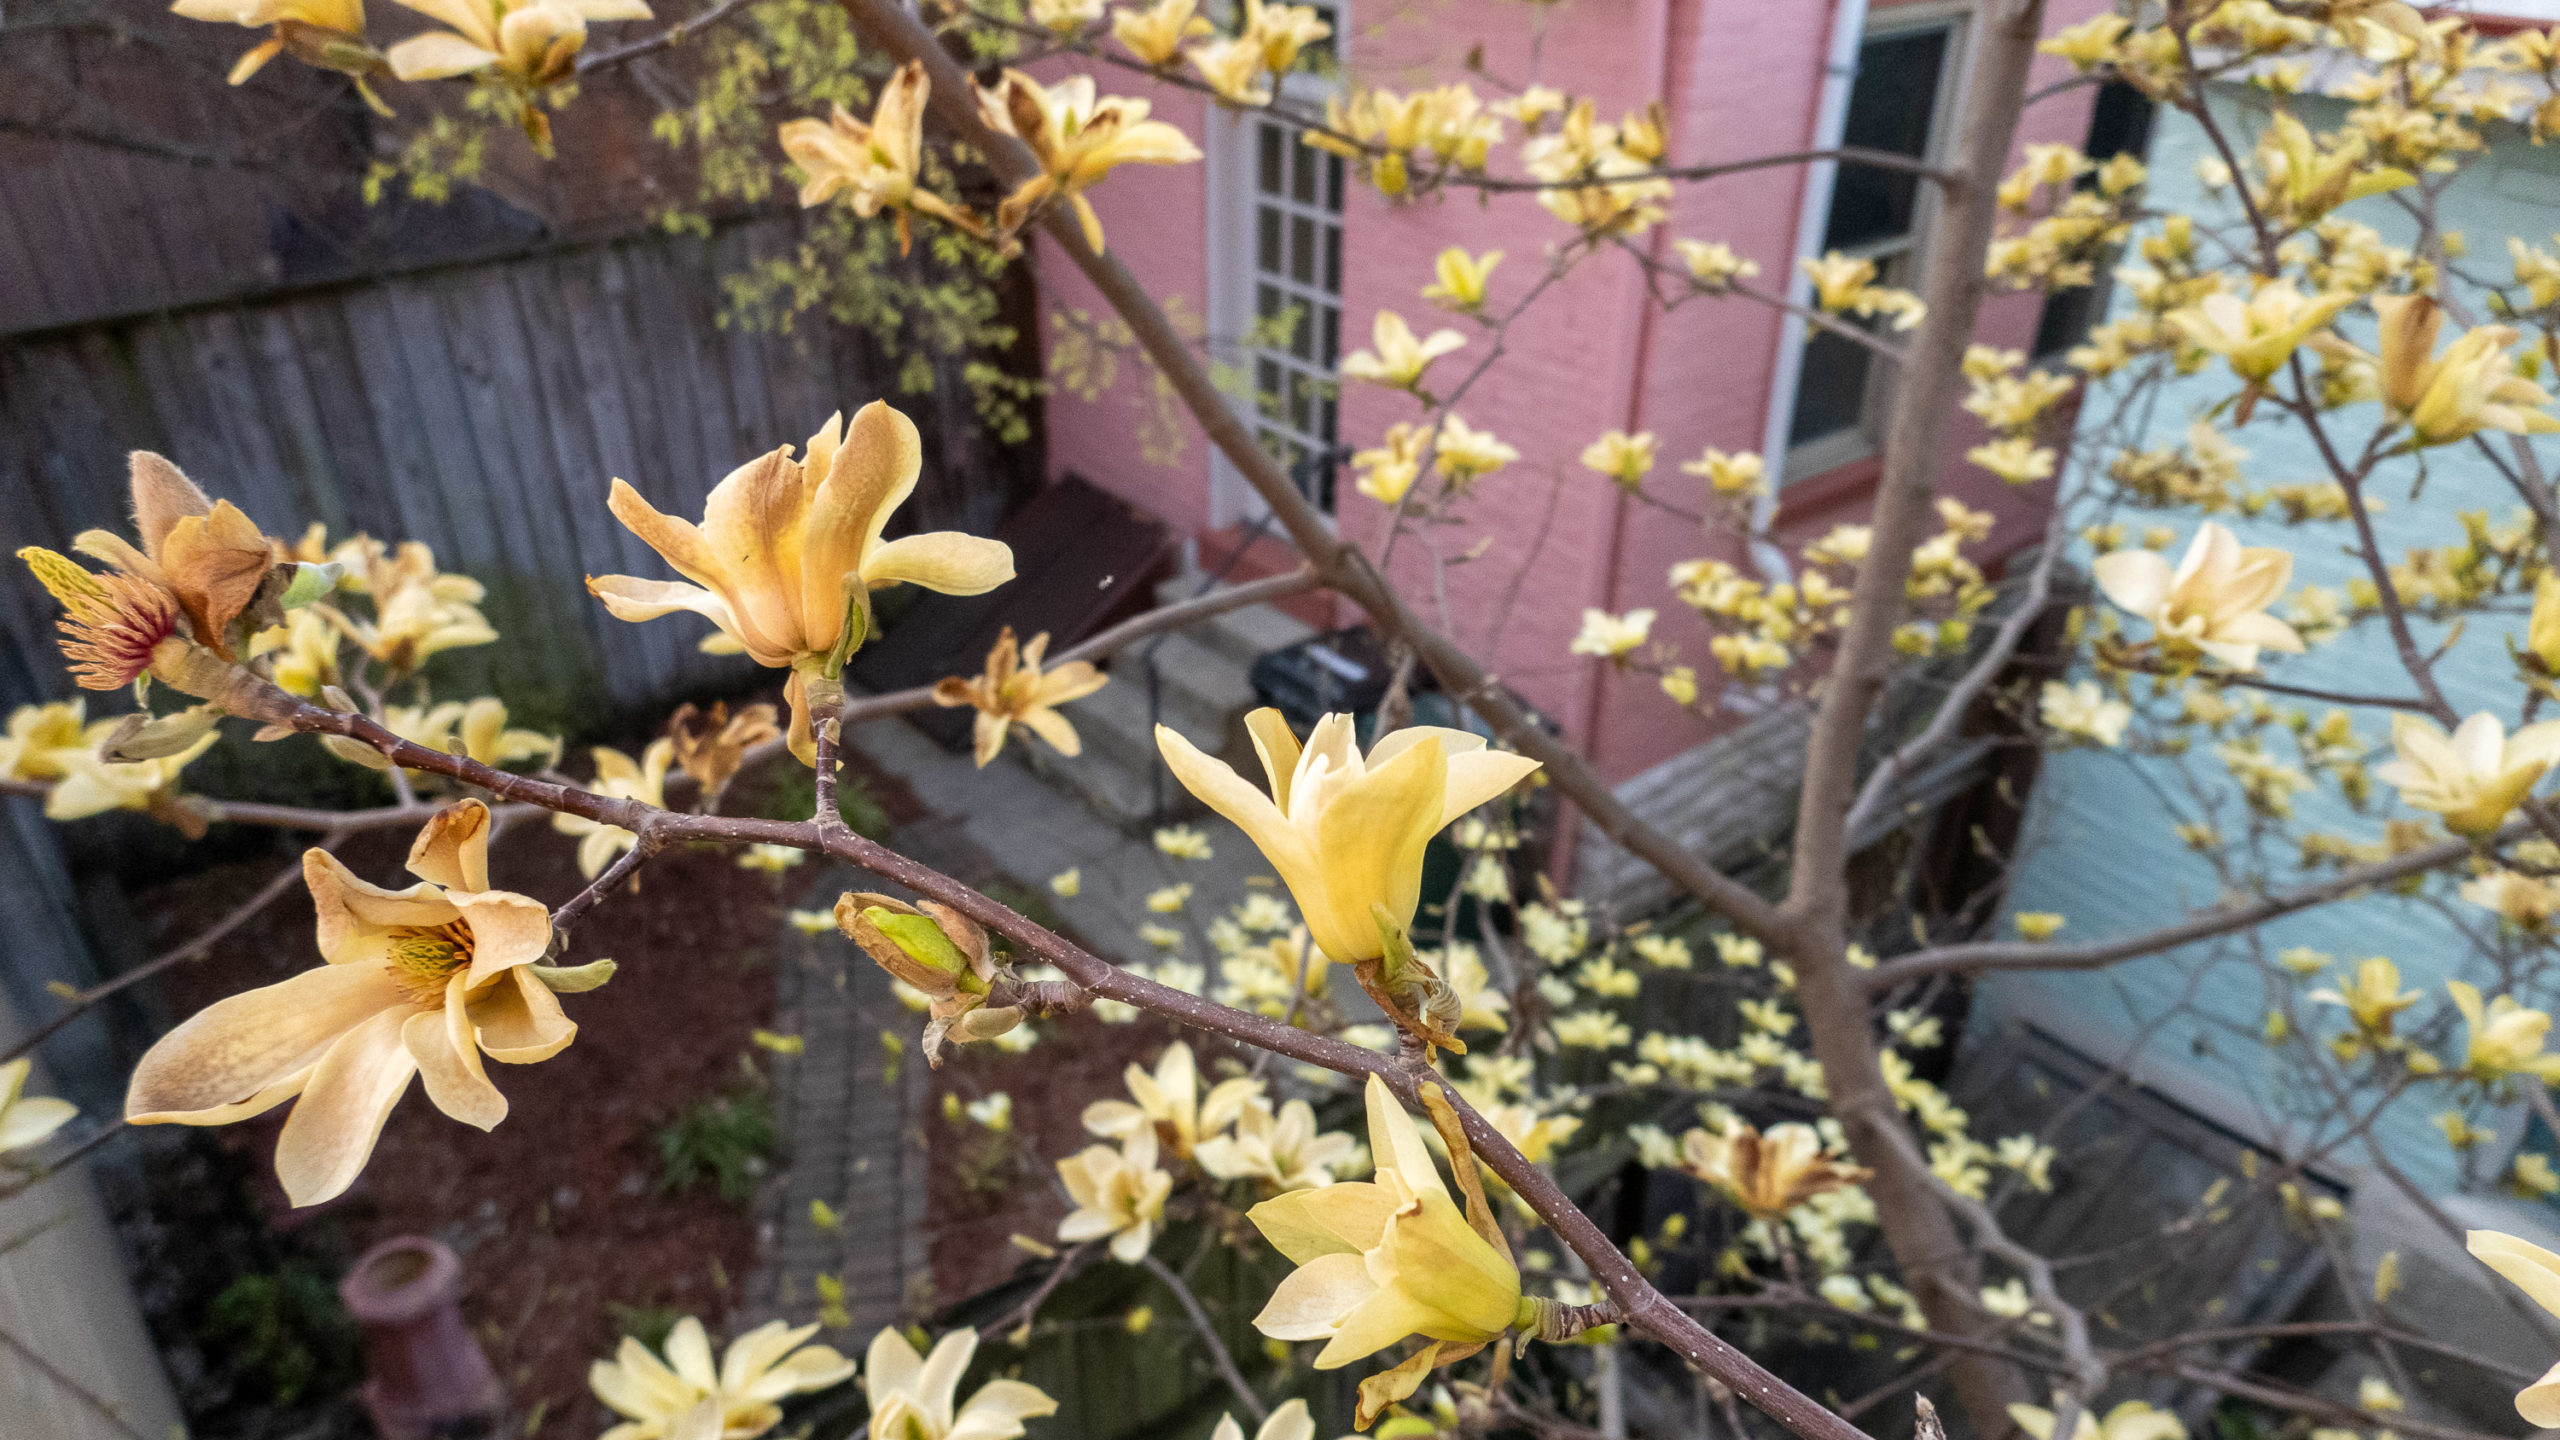 Yellow magnolia blooms against a pink house